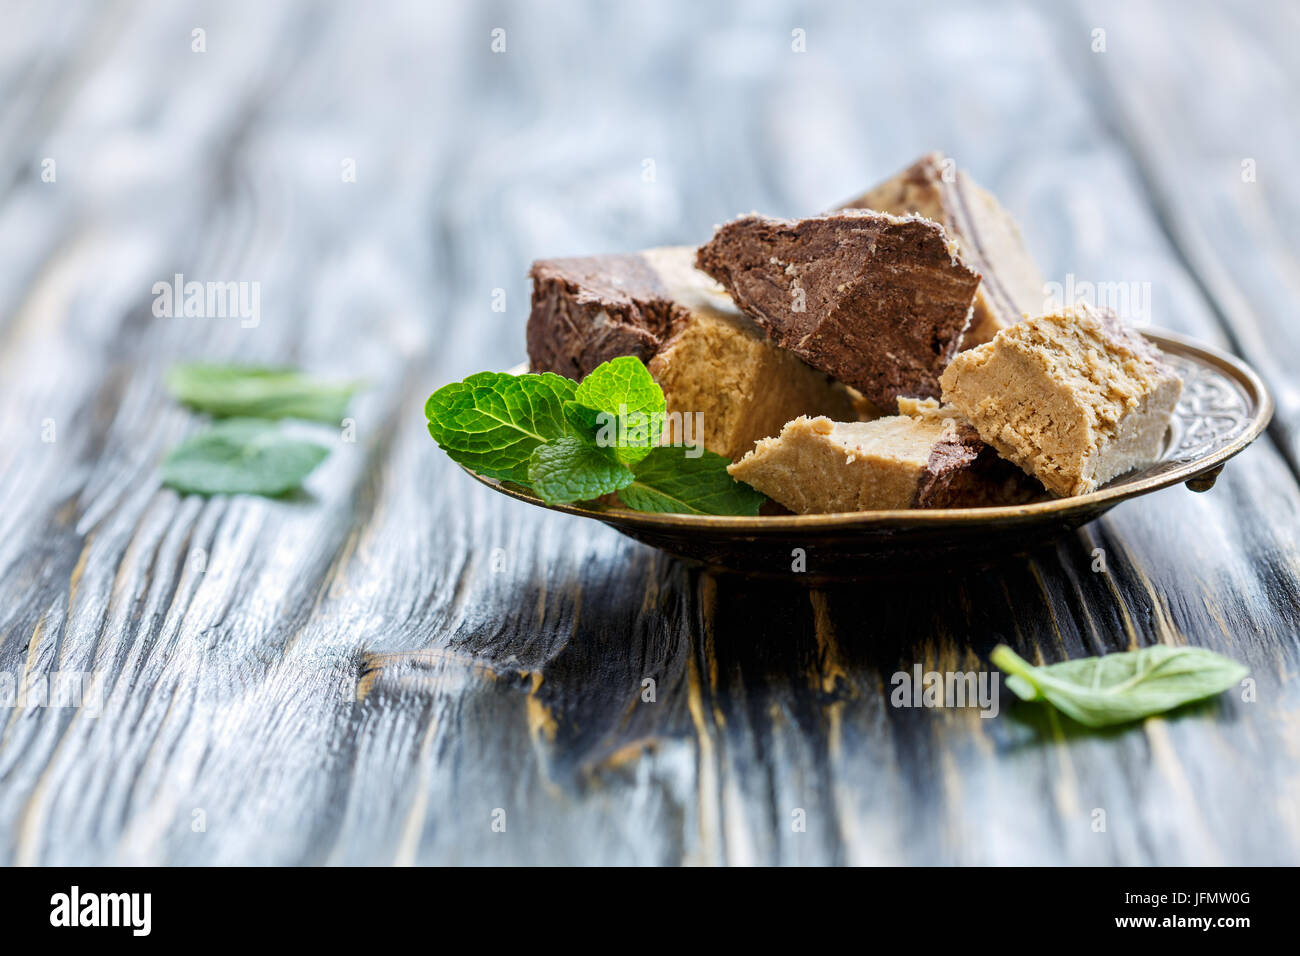 Plate of halva from sesame seeds with chocolate. - Stock Image